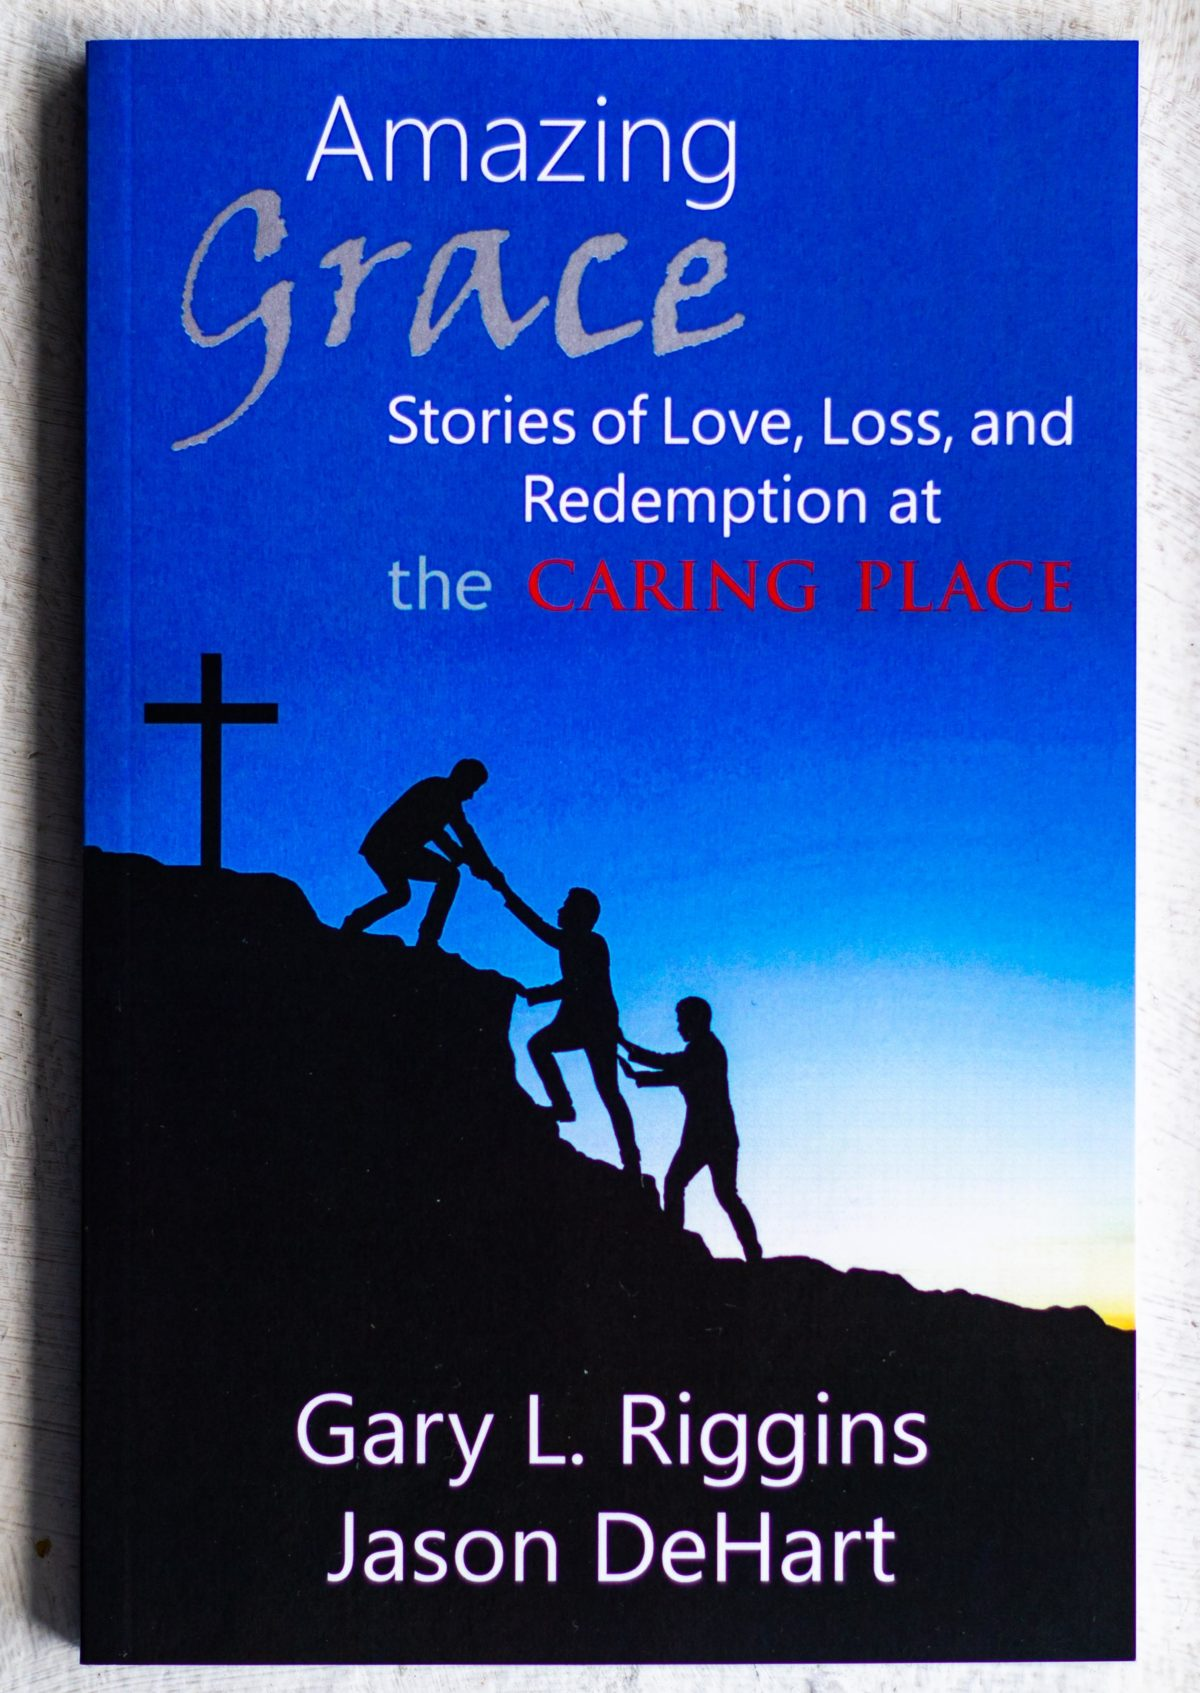 The Amazing Grace Book